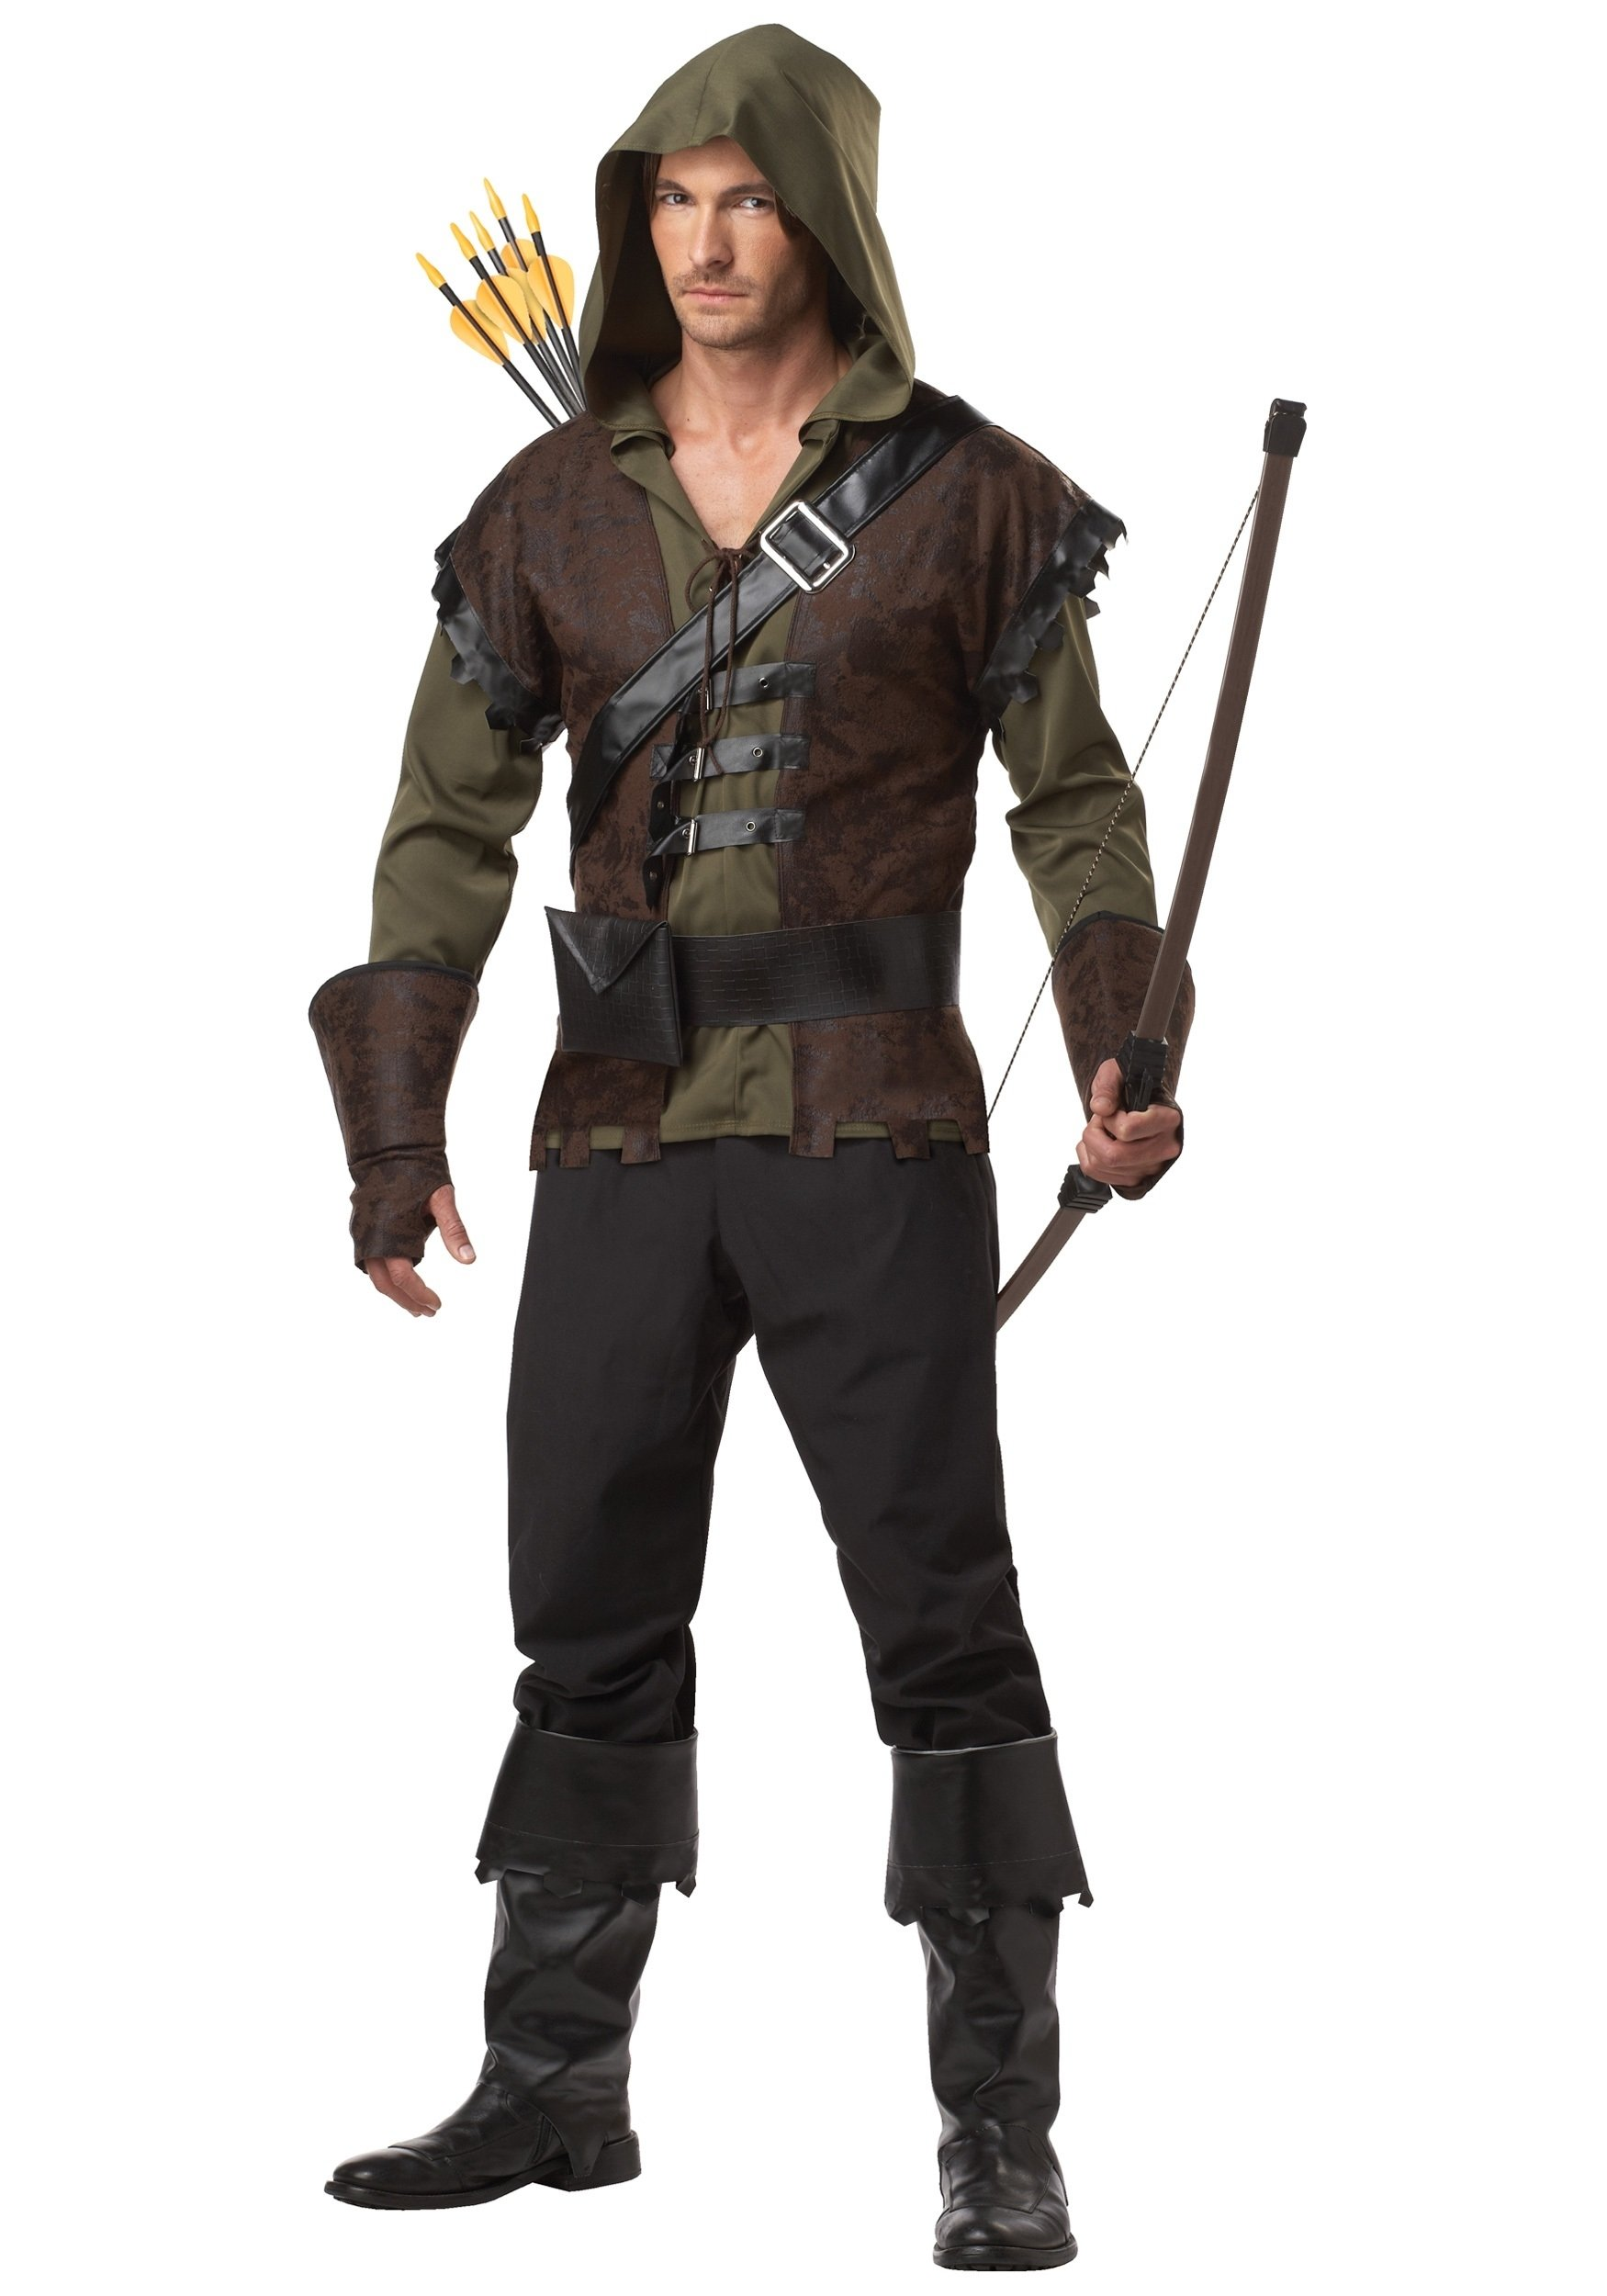 10 Stunning Halloween Costumes For Men Ideas mens realistic robin hood costume 2020